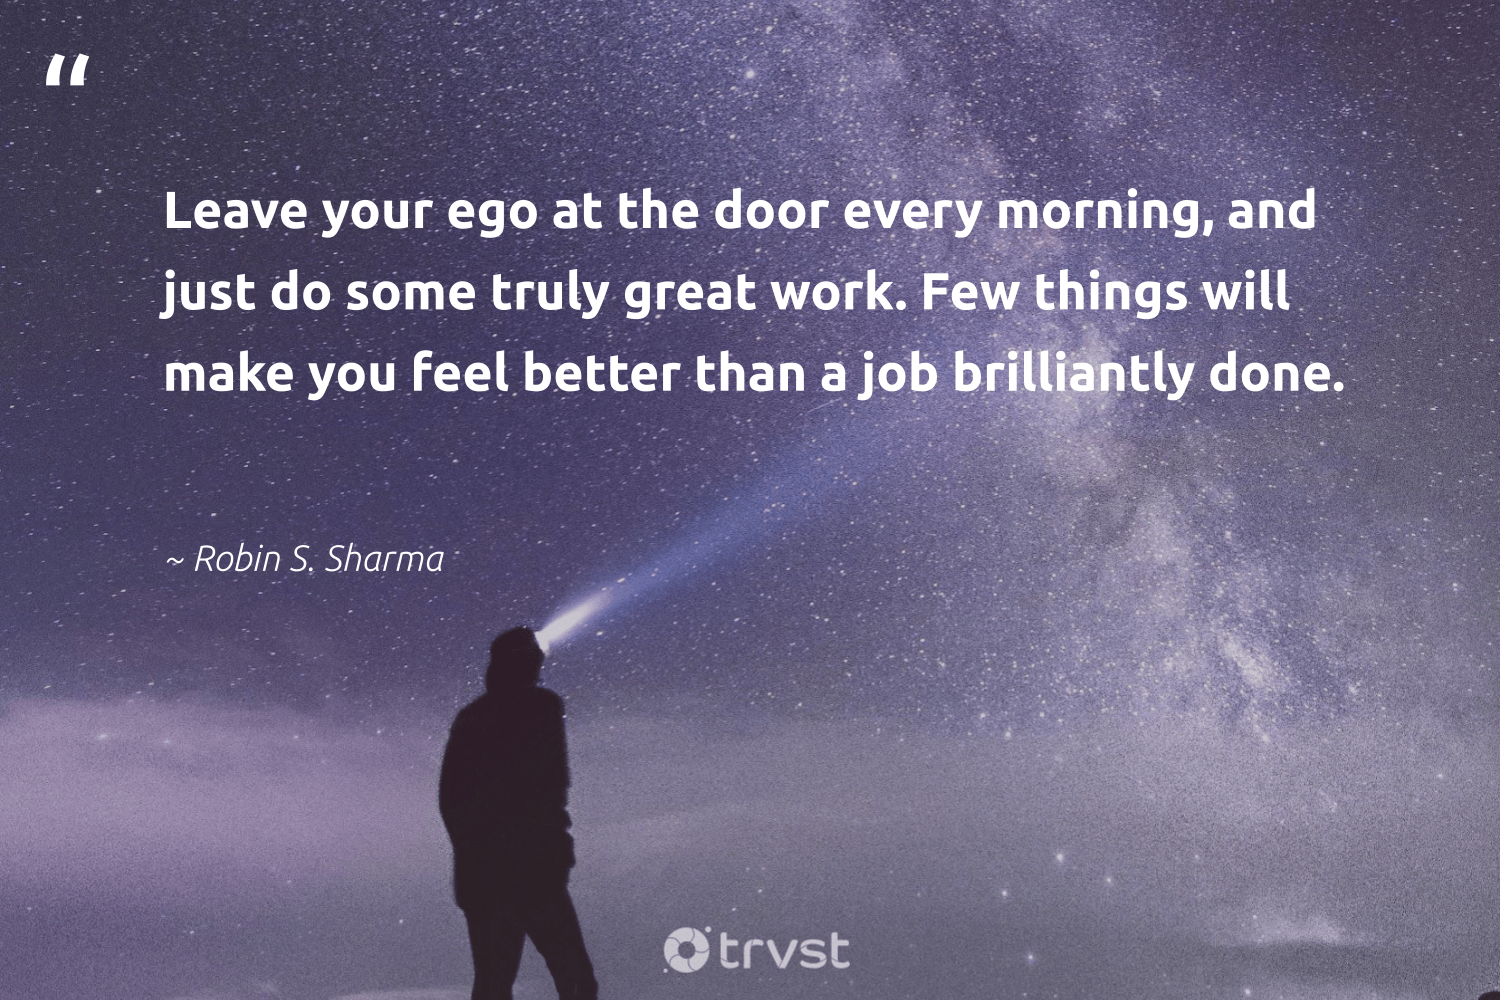 """Leave your ego at the door every morning, and just do some truly great work. Few things will make you feel better than a job brilliantly done.""  - Robin S. Sharma #trvst #quotes #nevergiveup #socialchange #softskills #impact #futureofwork #thinkgreen #begreat #bethechange #dosomething #beinspired"